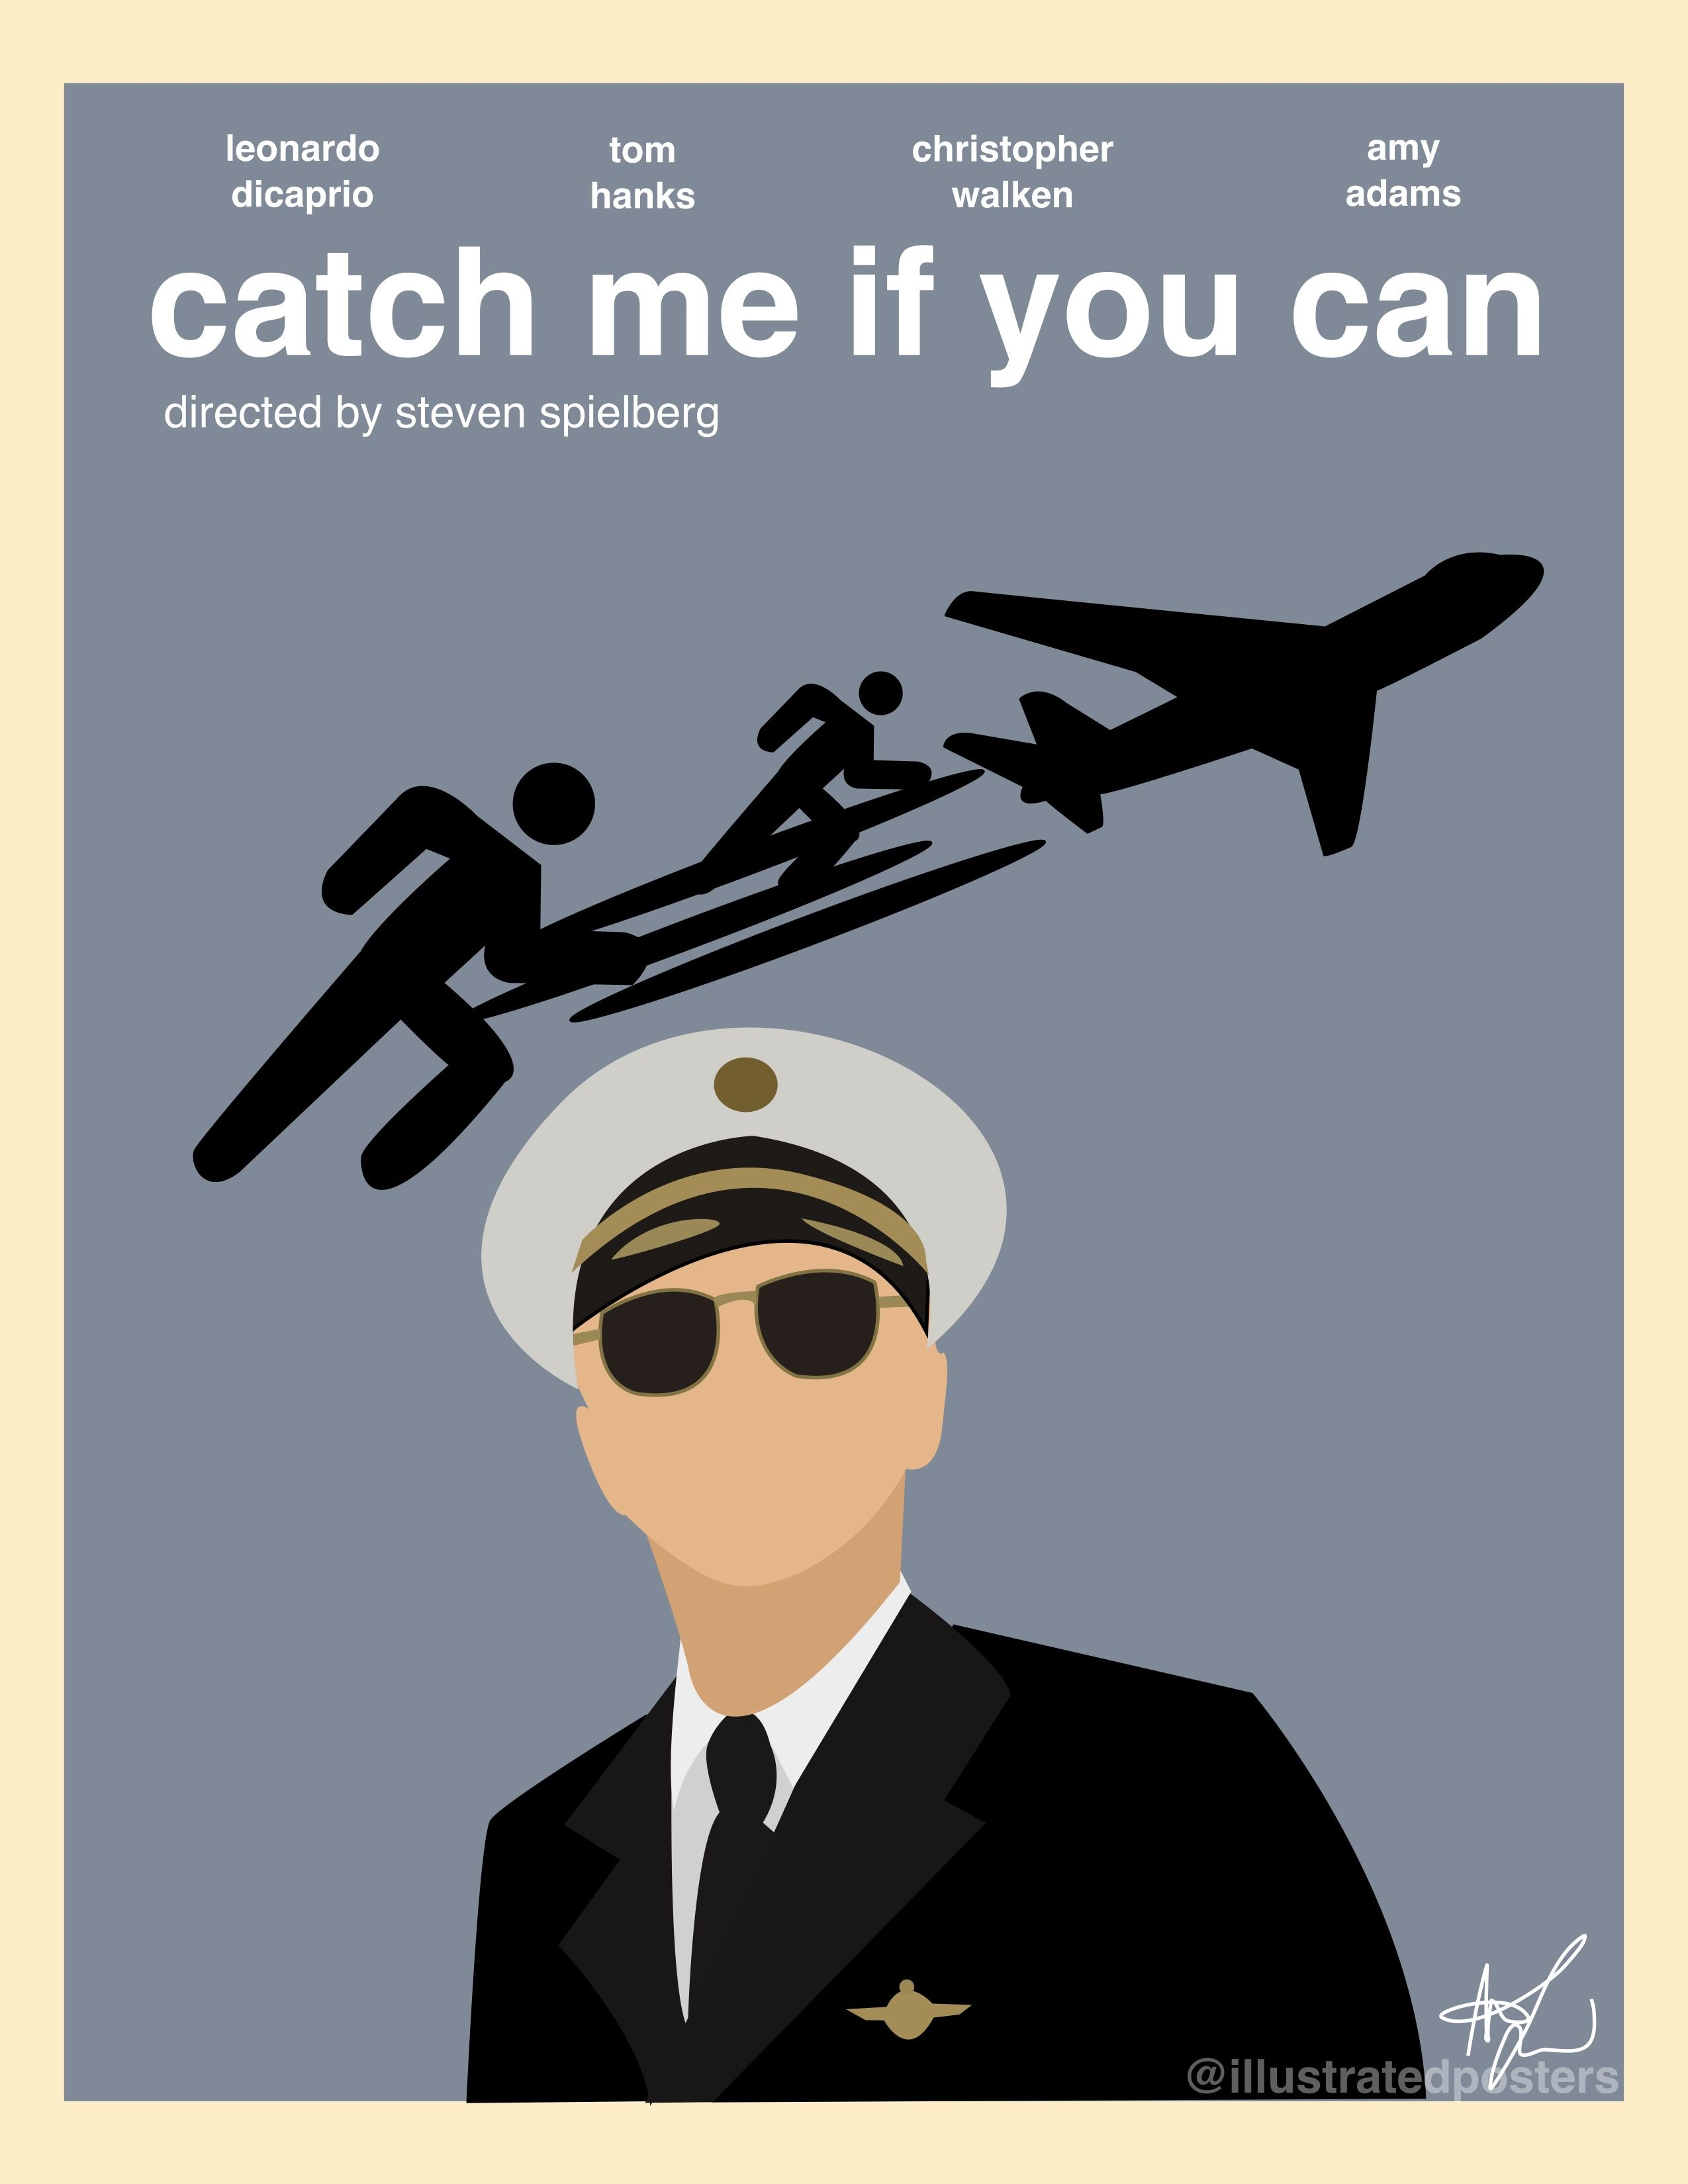 Catch Me If You Can 2002 Movie Poster Leonardo Dicaprio Made Using Adobe Illustrator You Bmust Ask Pe With Images Alternative Movie Posters Movie Posters Film Posters